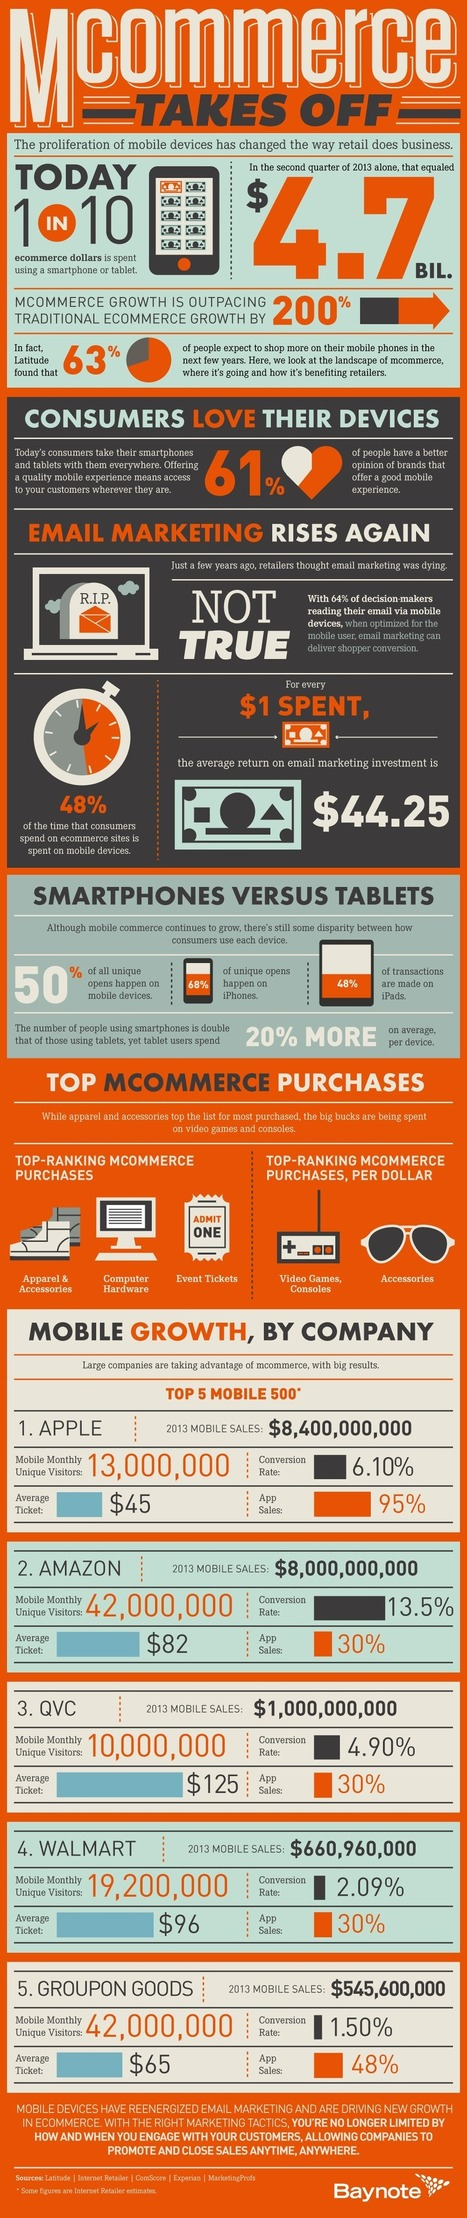 Infographic: MCommerce Growing 200% Faster than ECommerce | JOIN SCOOP.IT AND FOLLOW ME ON SCOOP.IT | Scoop.it